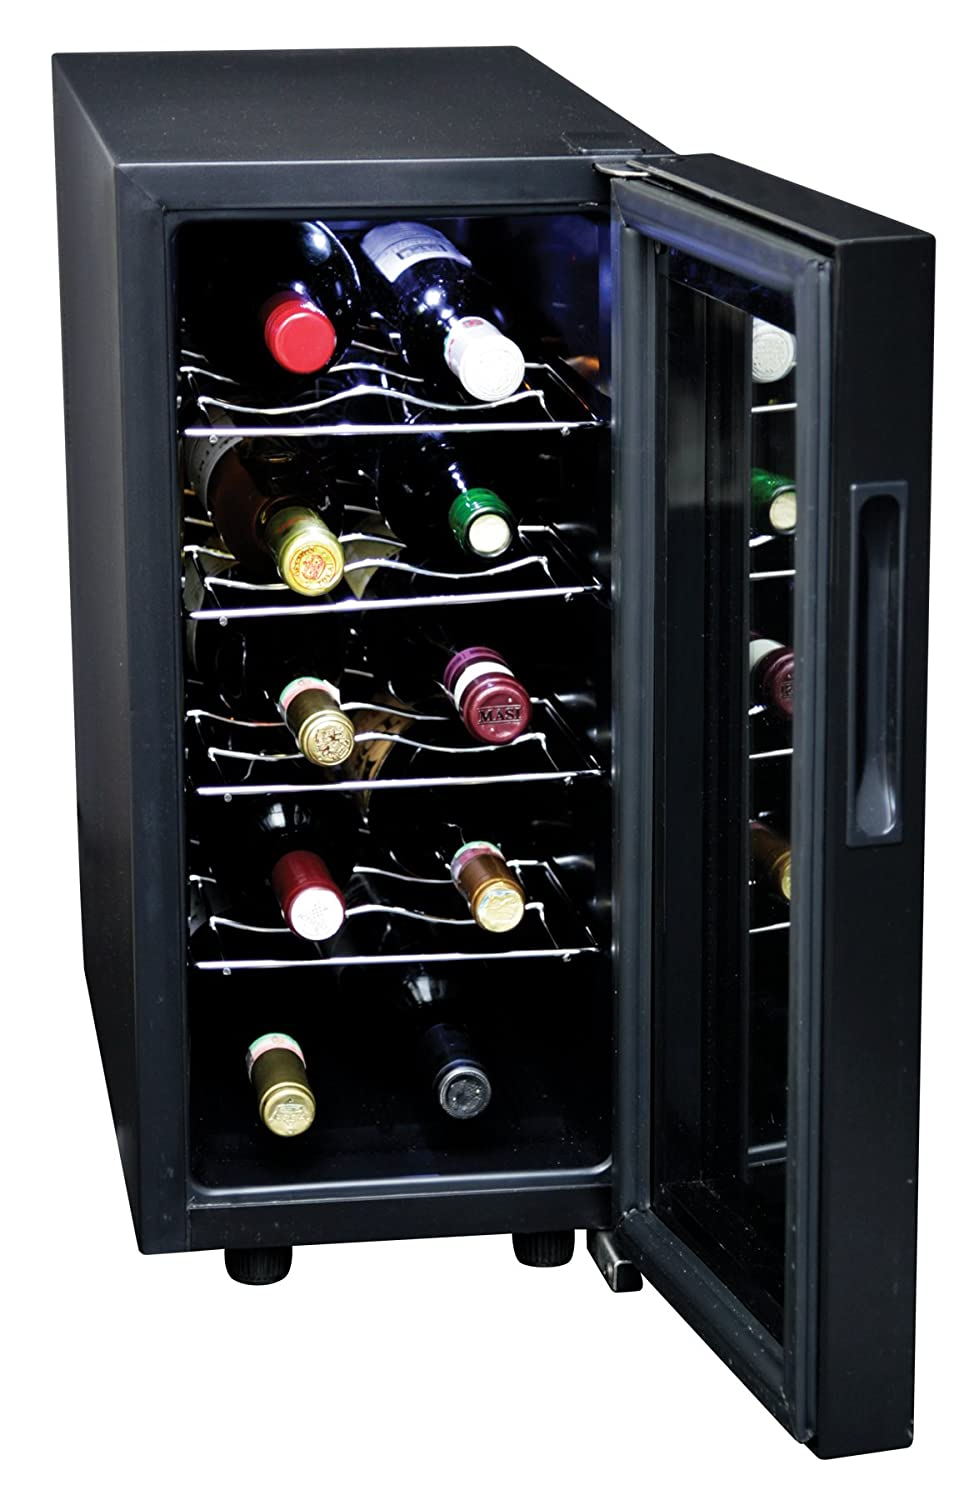 Koolatron KWT10B 10-Bottle Digital Temperature Control Wine Cellar, Black Lentek